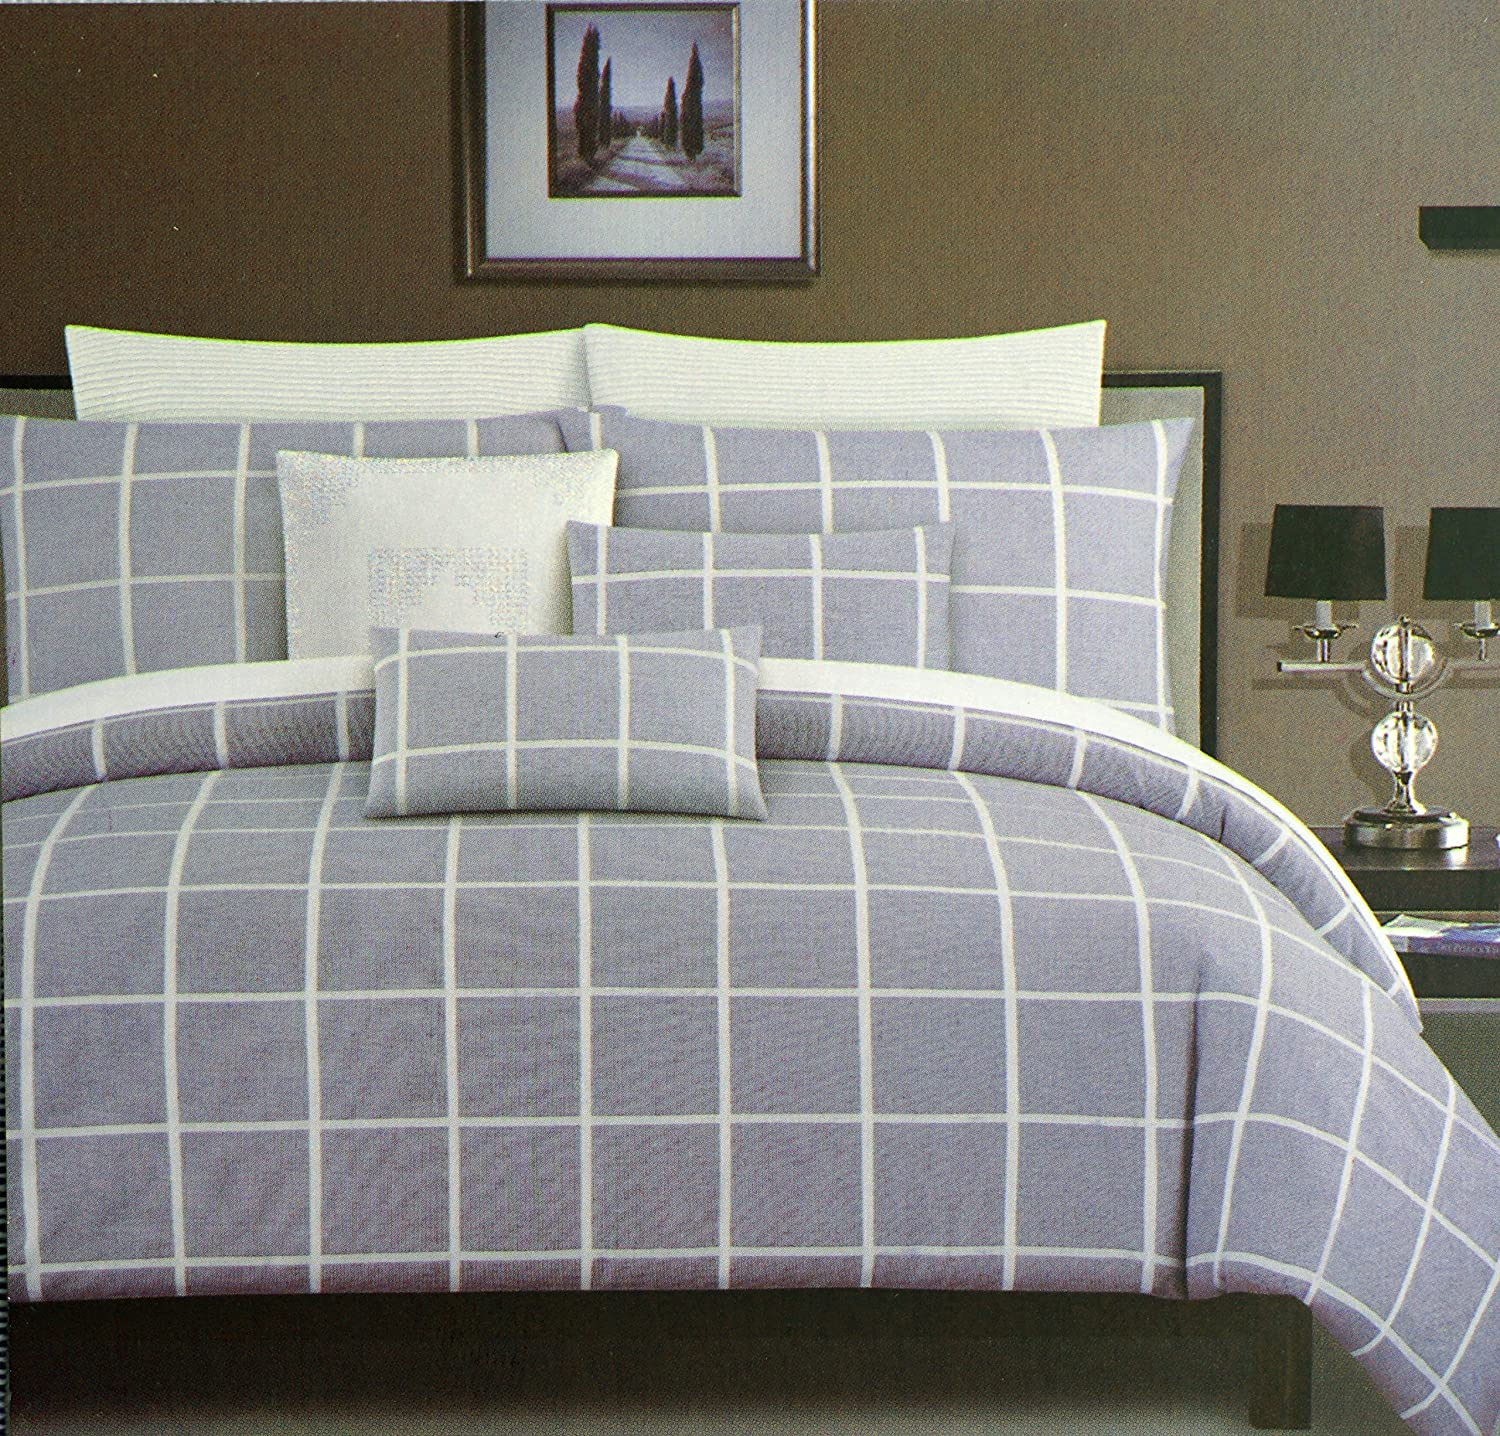 Tahari Home Maison Bedding 3 Piece King Size Bed Duvet Comforter Cover and Shams Set Modern Check Geo Squares Pattern Plaid White Navy Blue Textured Bedding